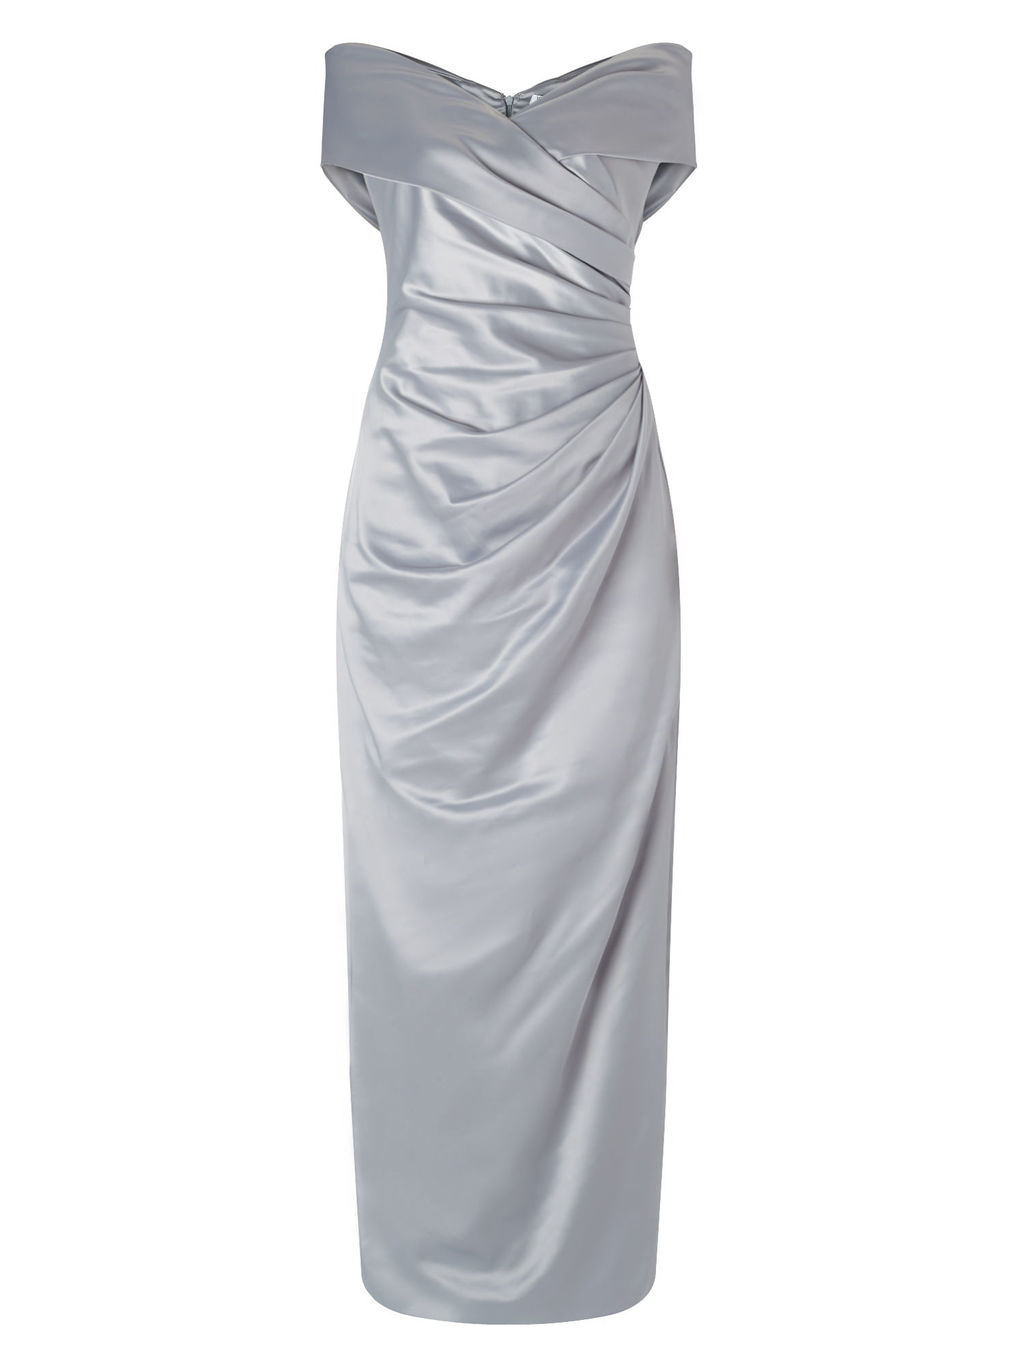 Lorcan Bardot Cross Front Maxi - neckline: v-neck; sleeve style: capped; fit: tailored/fitted; pattern: plain; style: maxi dress; predominant colour: silver; length: floor length; fibres: polyester/polyamide - stretch; occasions: occasion; sleeve length: short sleeve; texture group: structured shiny - satin/tafetta/silk etc.; pattern type: fabric; season: s/s 2016; wardrobe: event